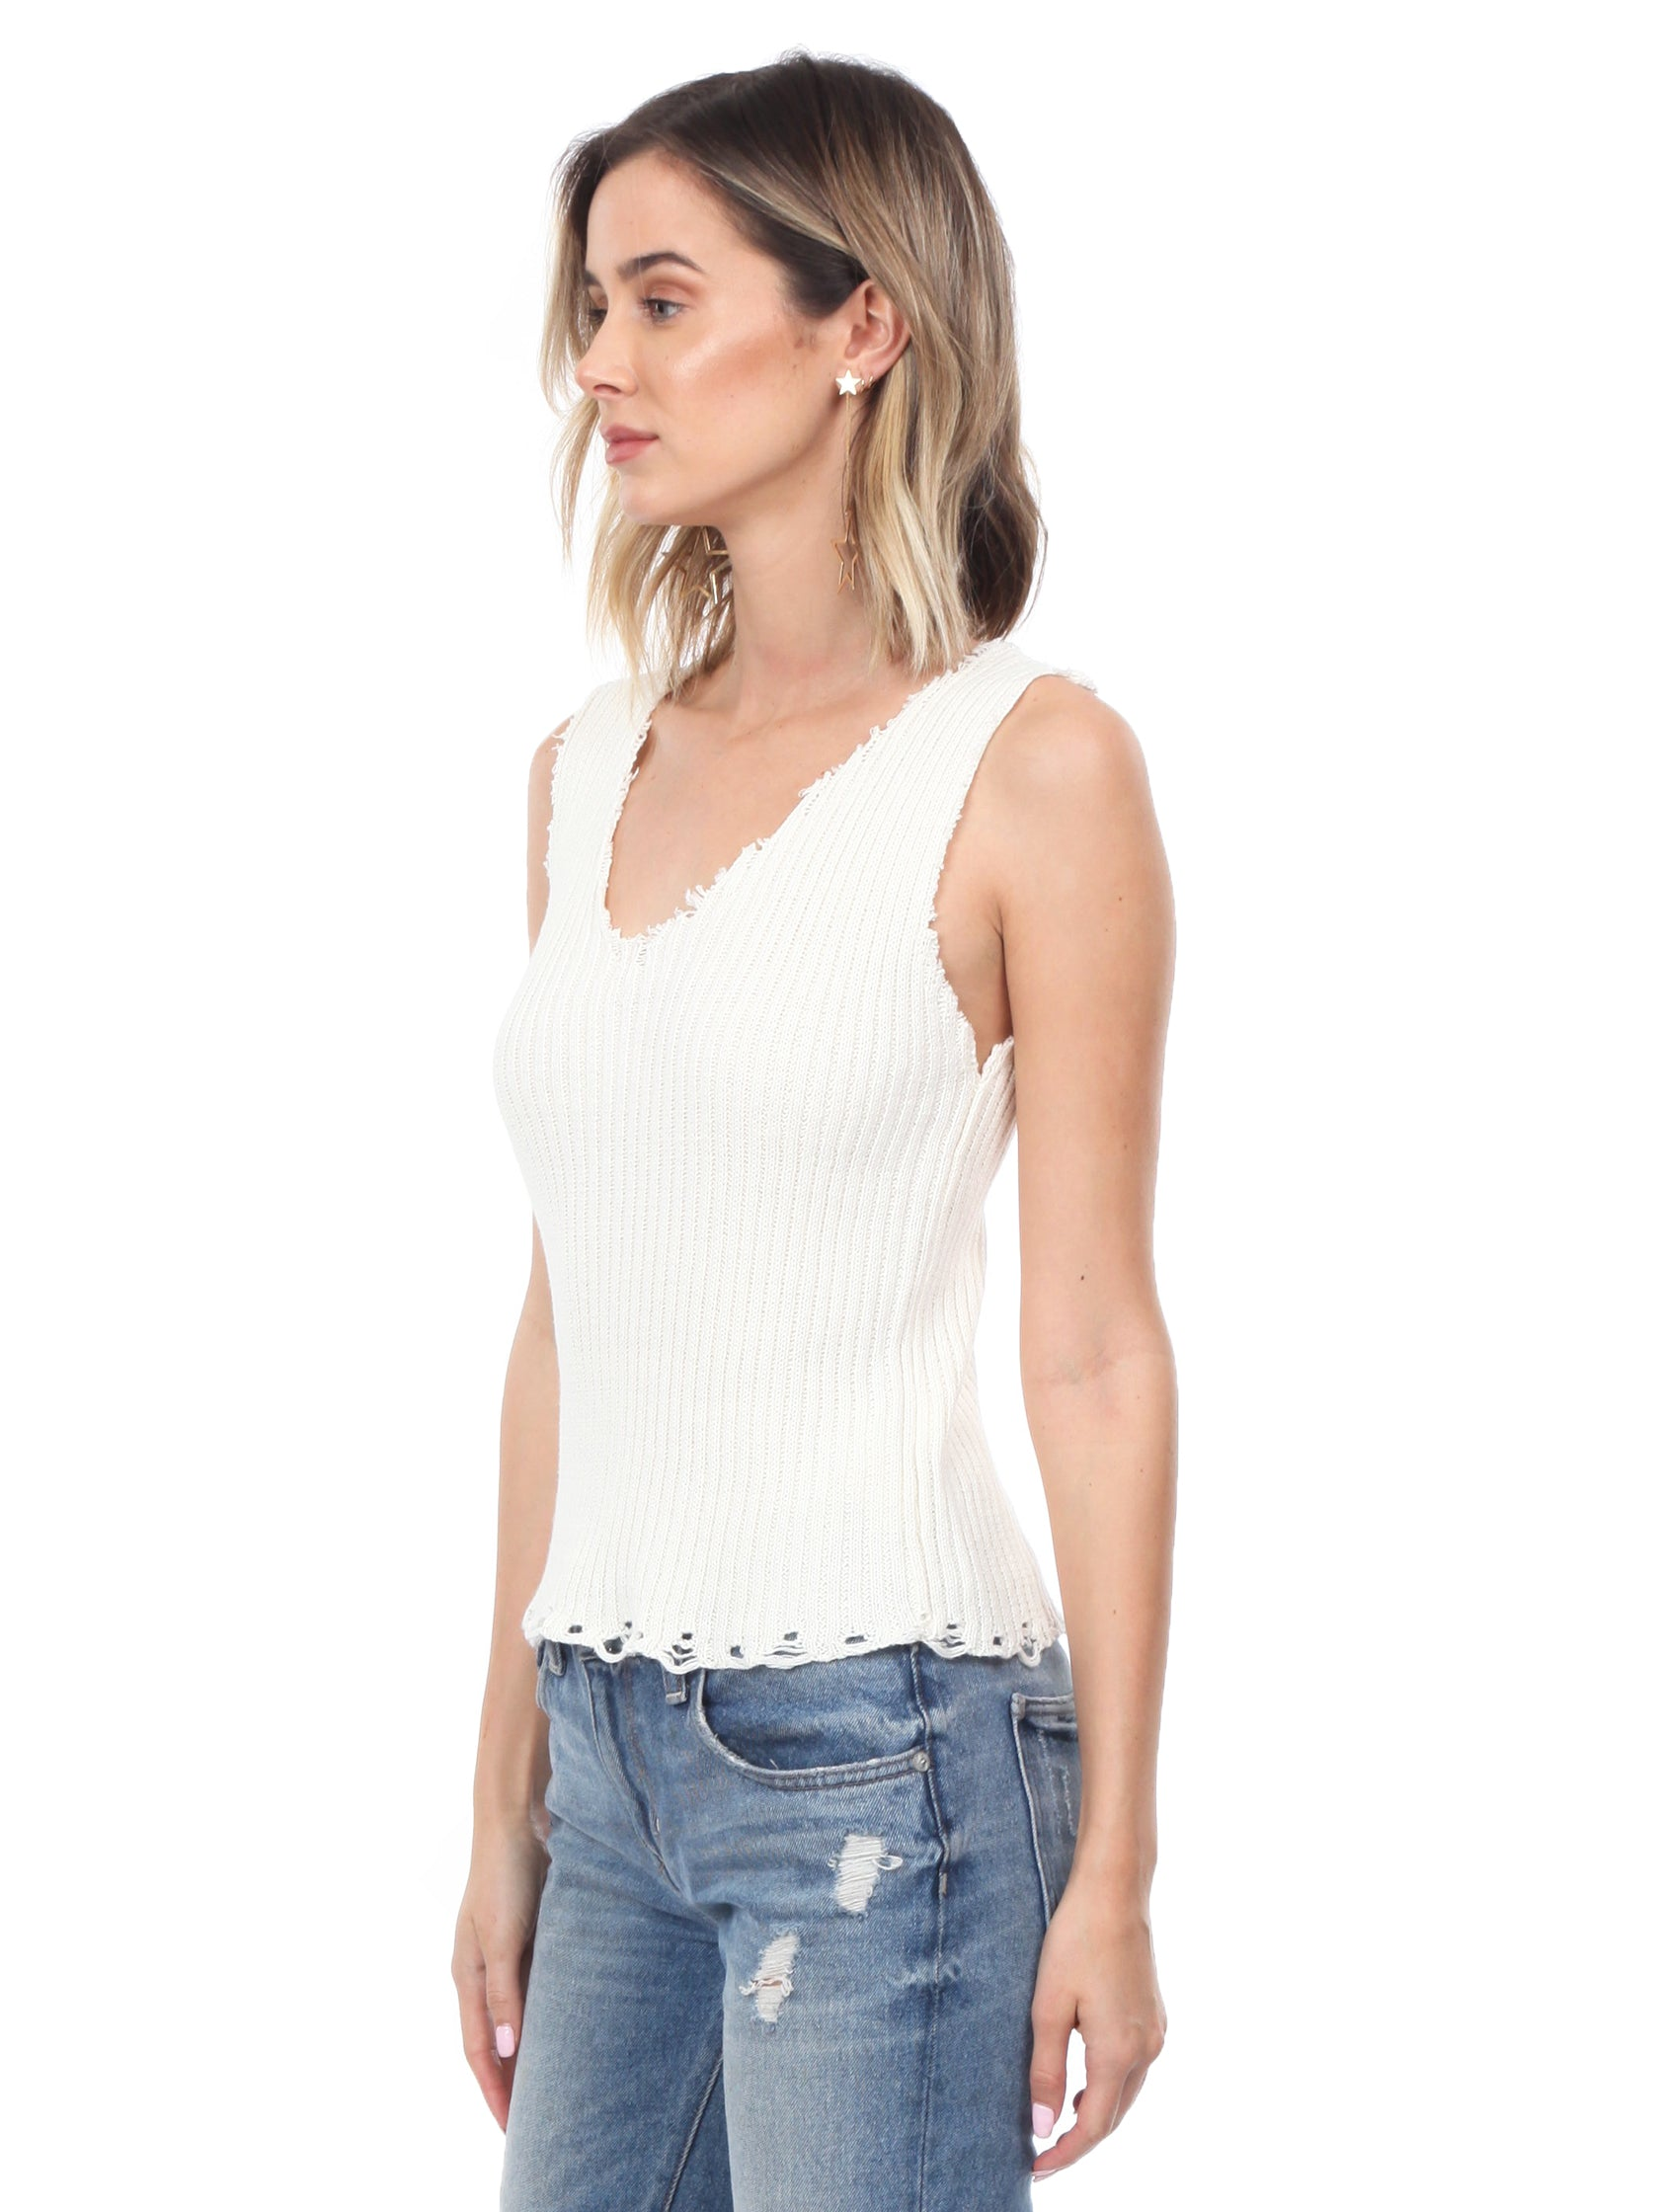 Women wearing a top rental from Moon River called Knit Sleeveless Sweater Top